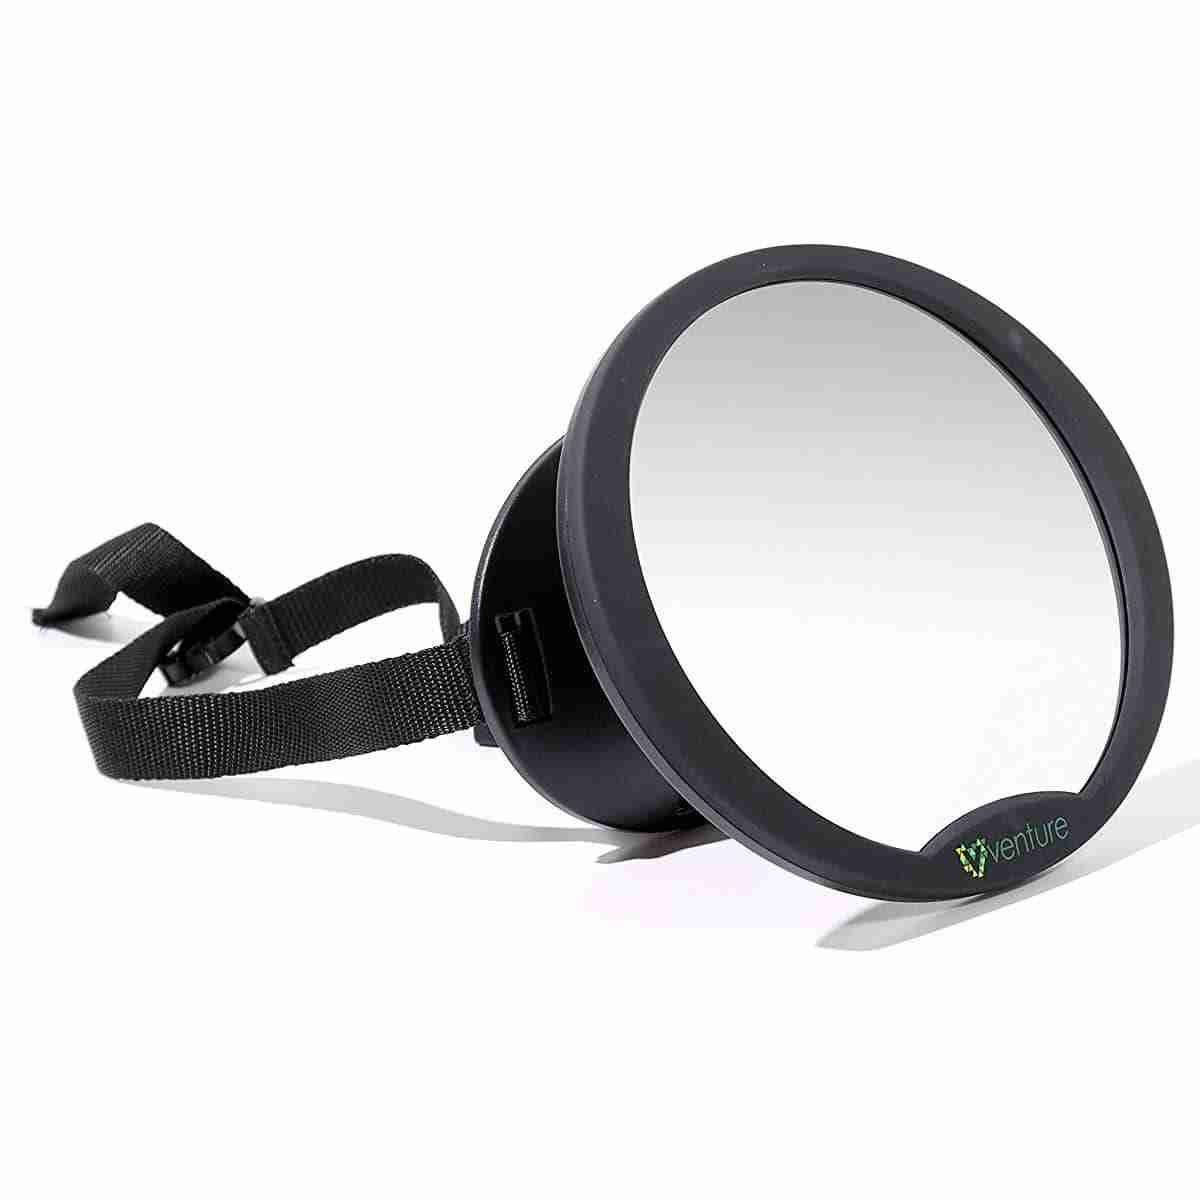 Baby car mirror made from high quality plastic and shatterproof mirror